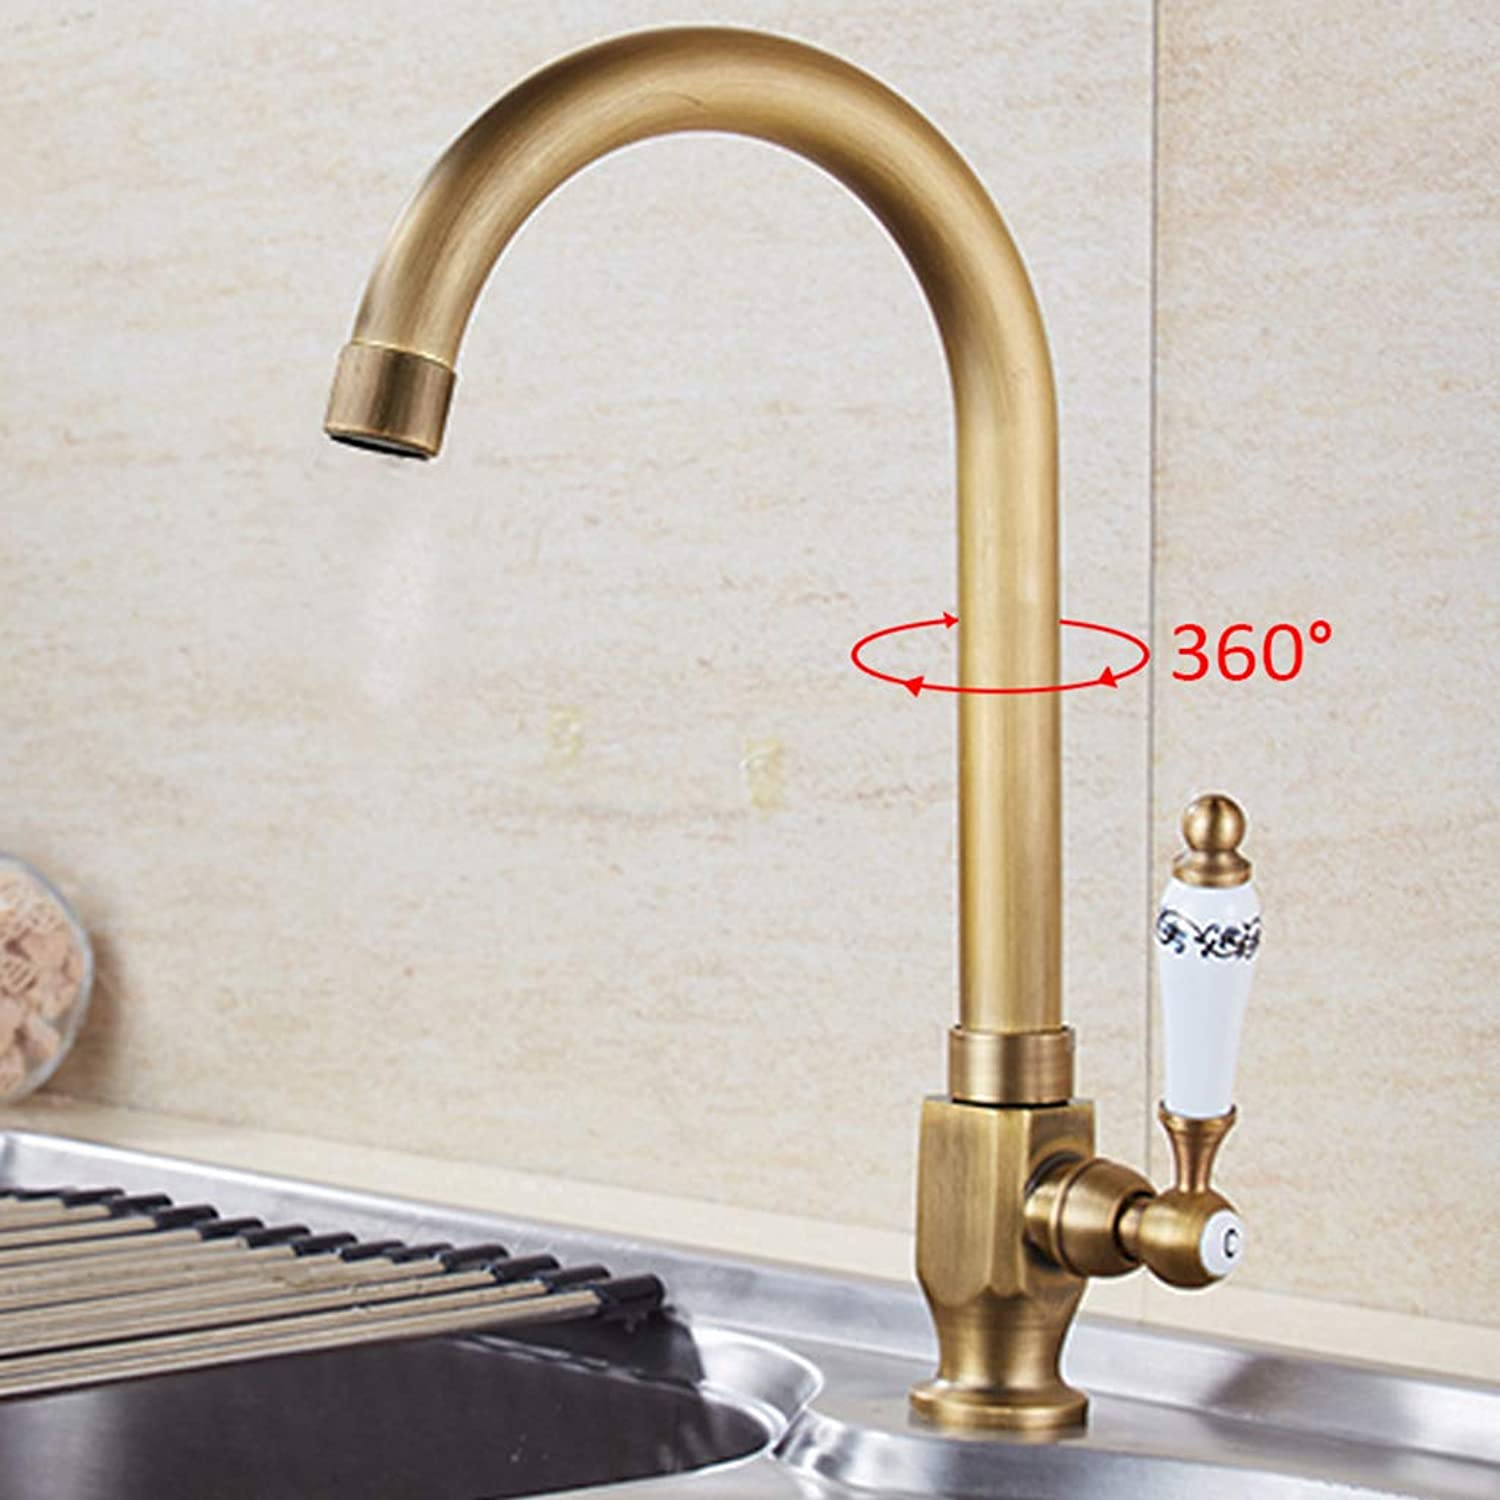 Kitchen faucet Antique Single Cold, redating greenical European Sink Faucet, Sanitary Ware Faucet